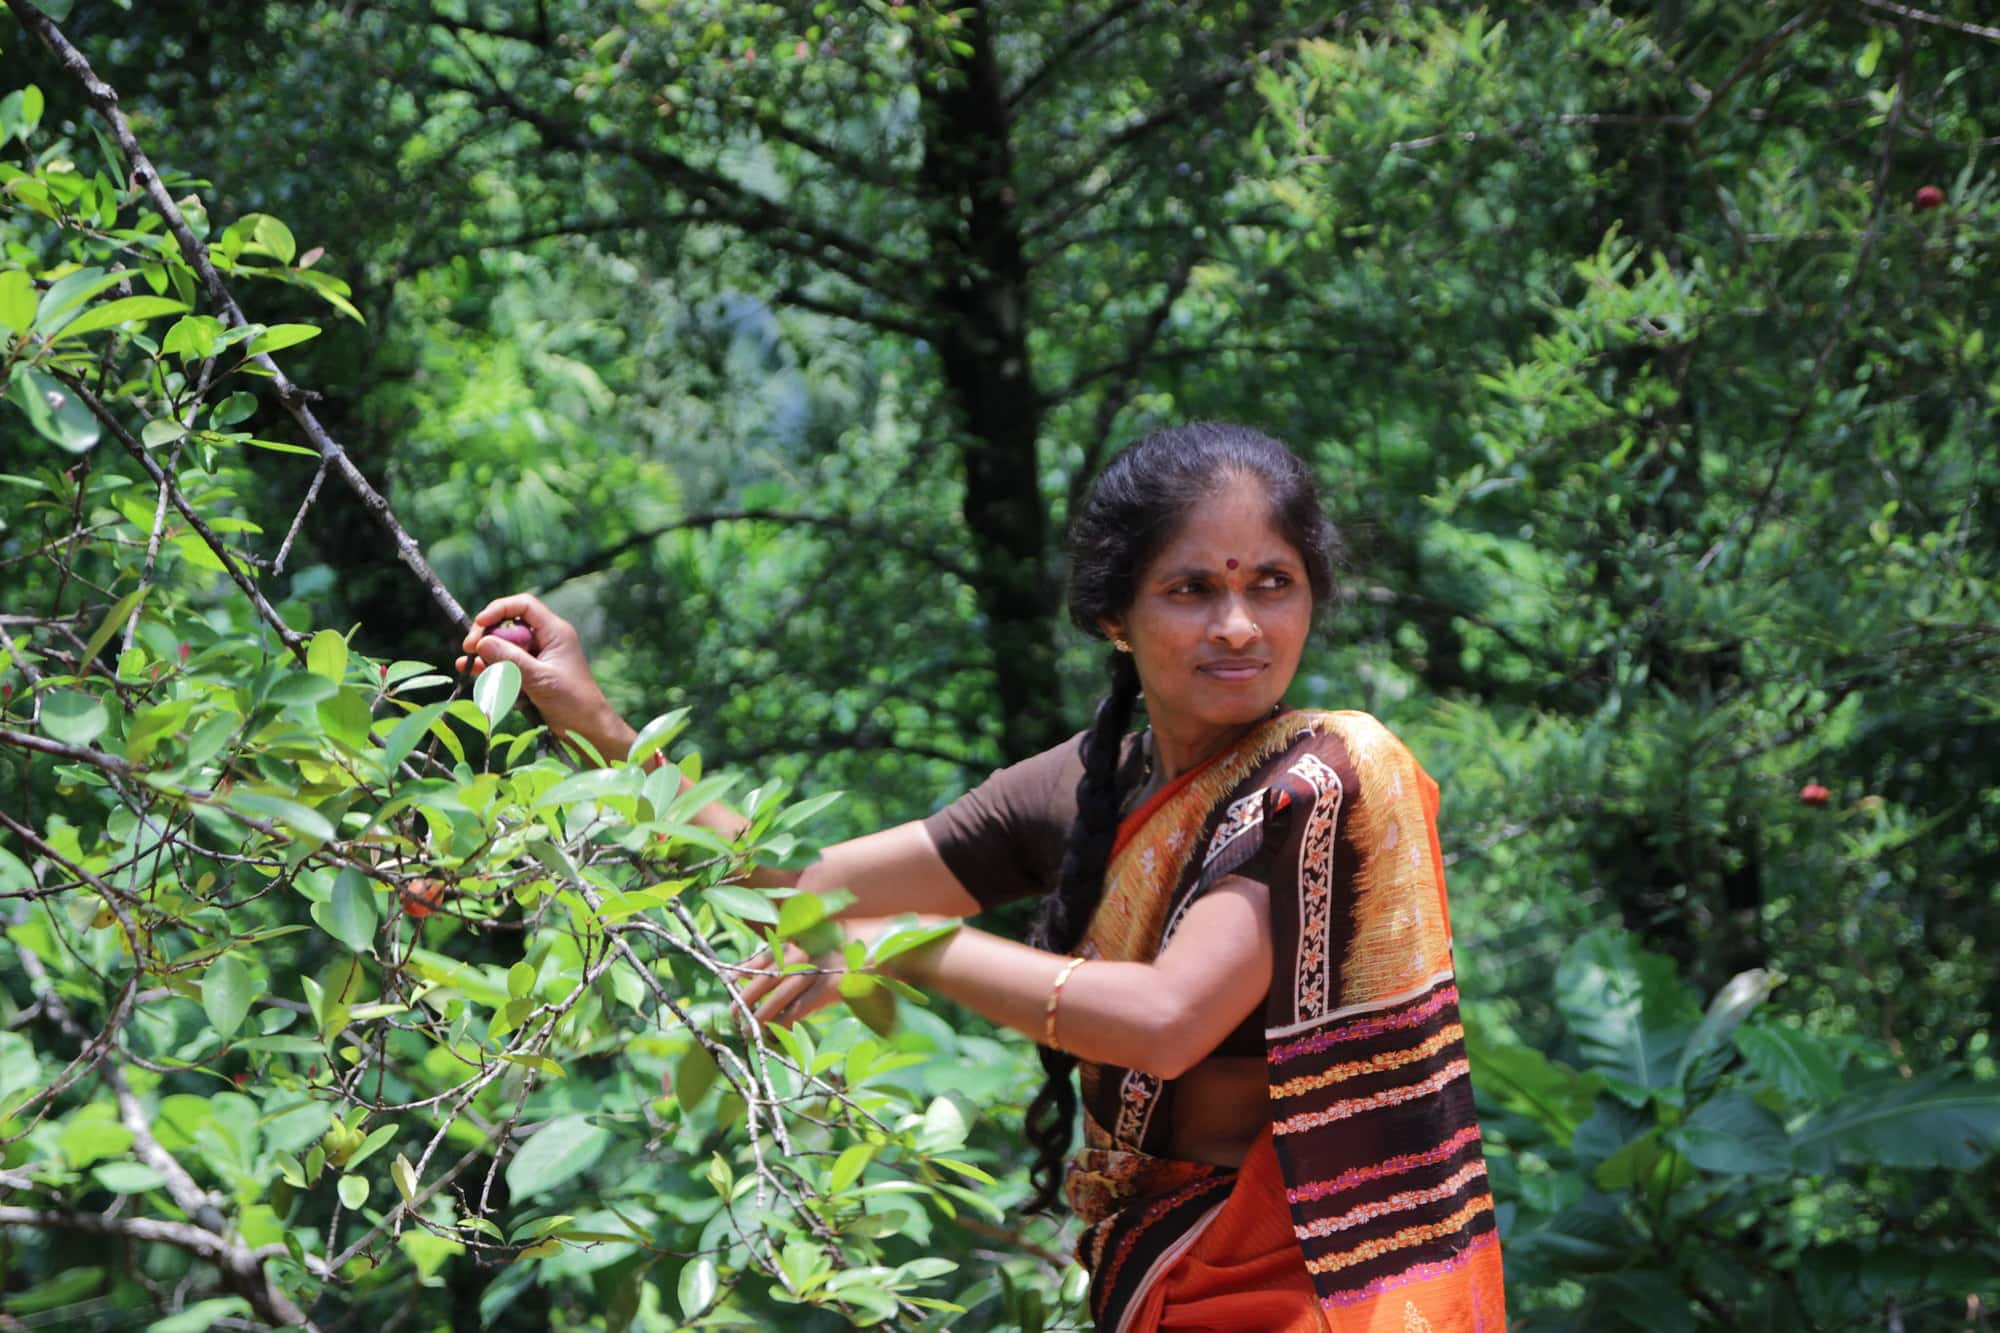 Picking garcinia indica from trees in the forest near local village of Western Ghats, India